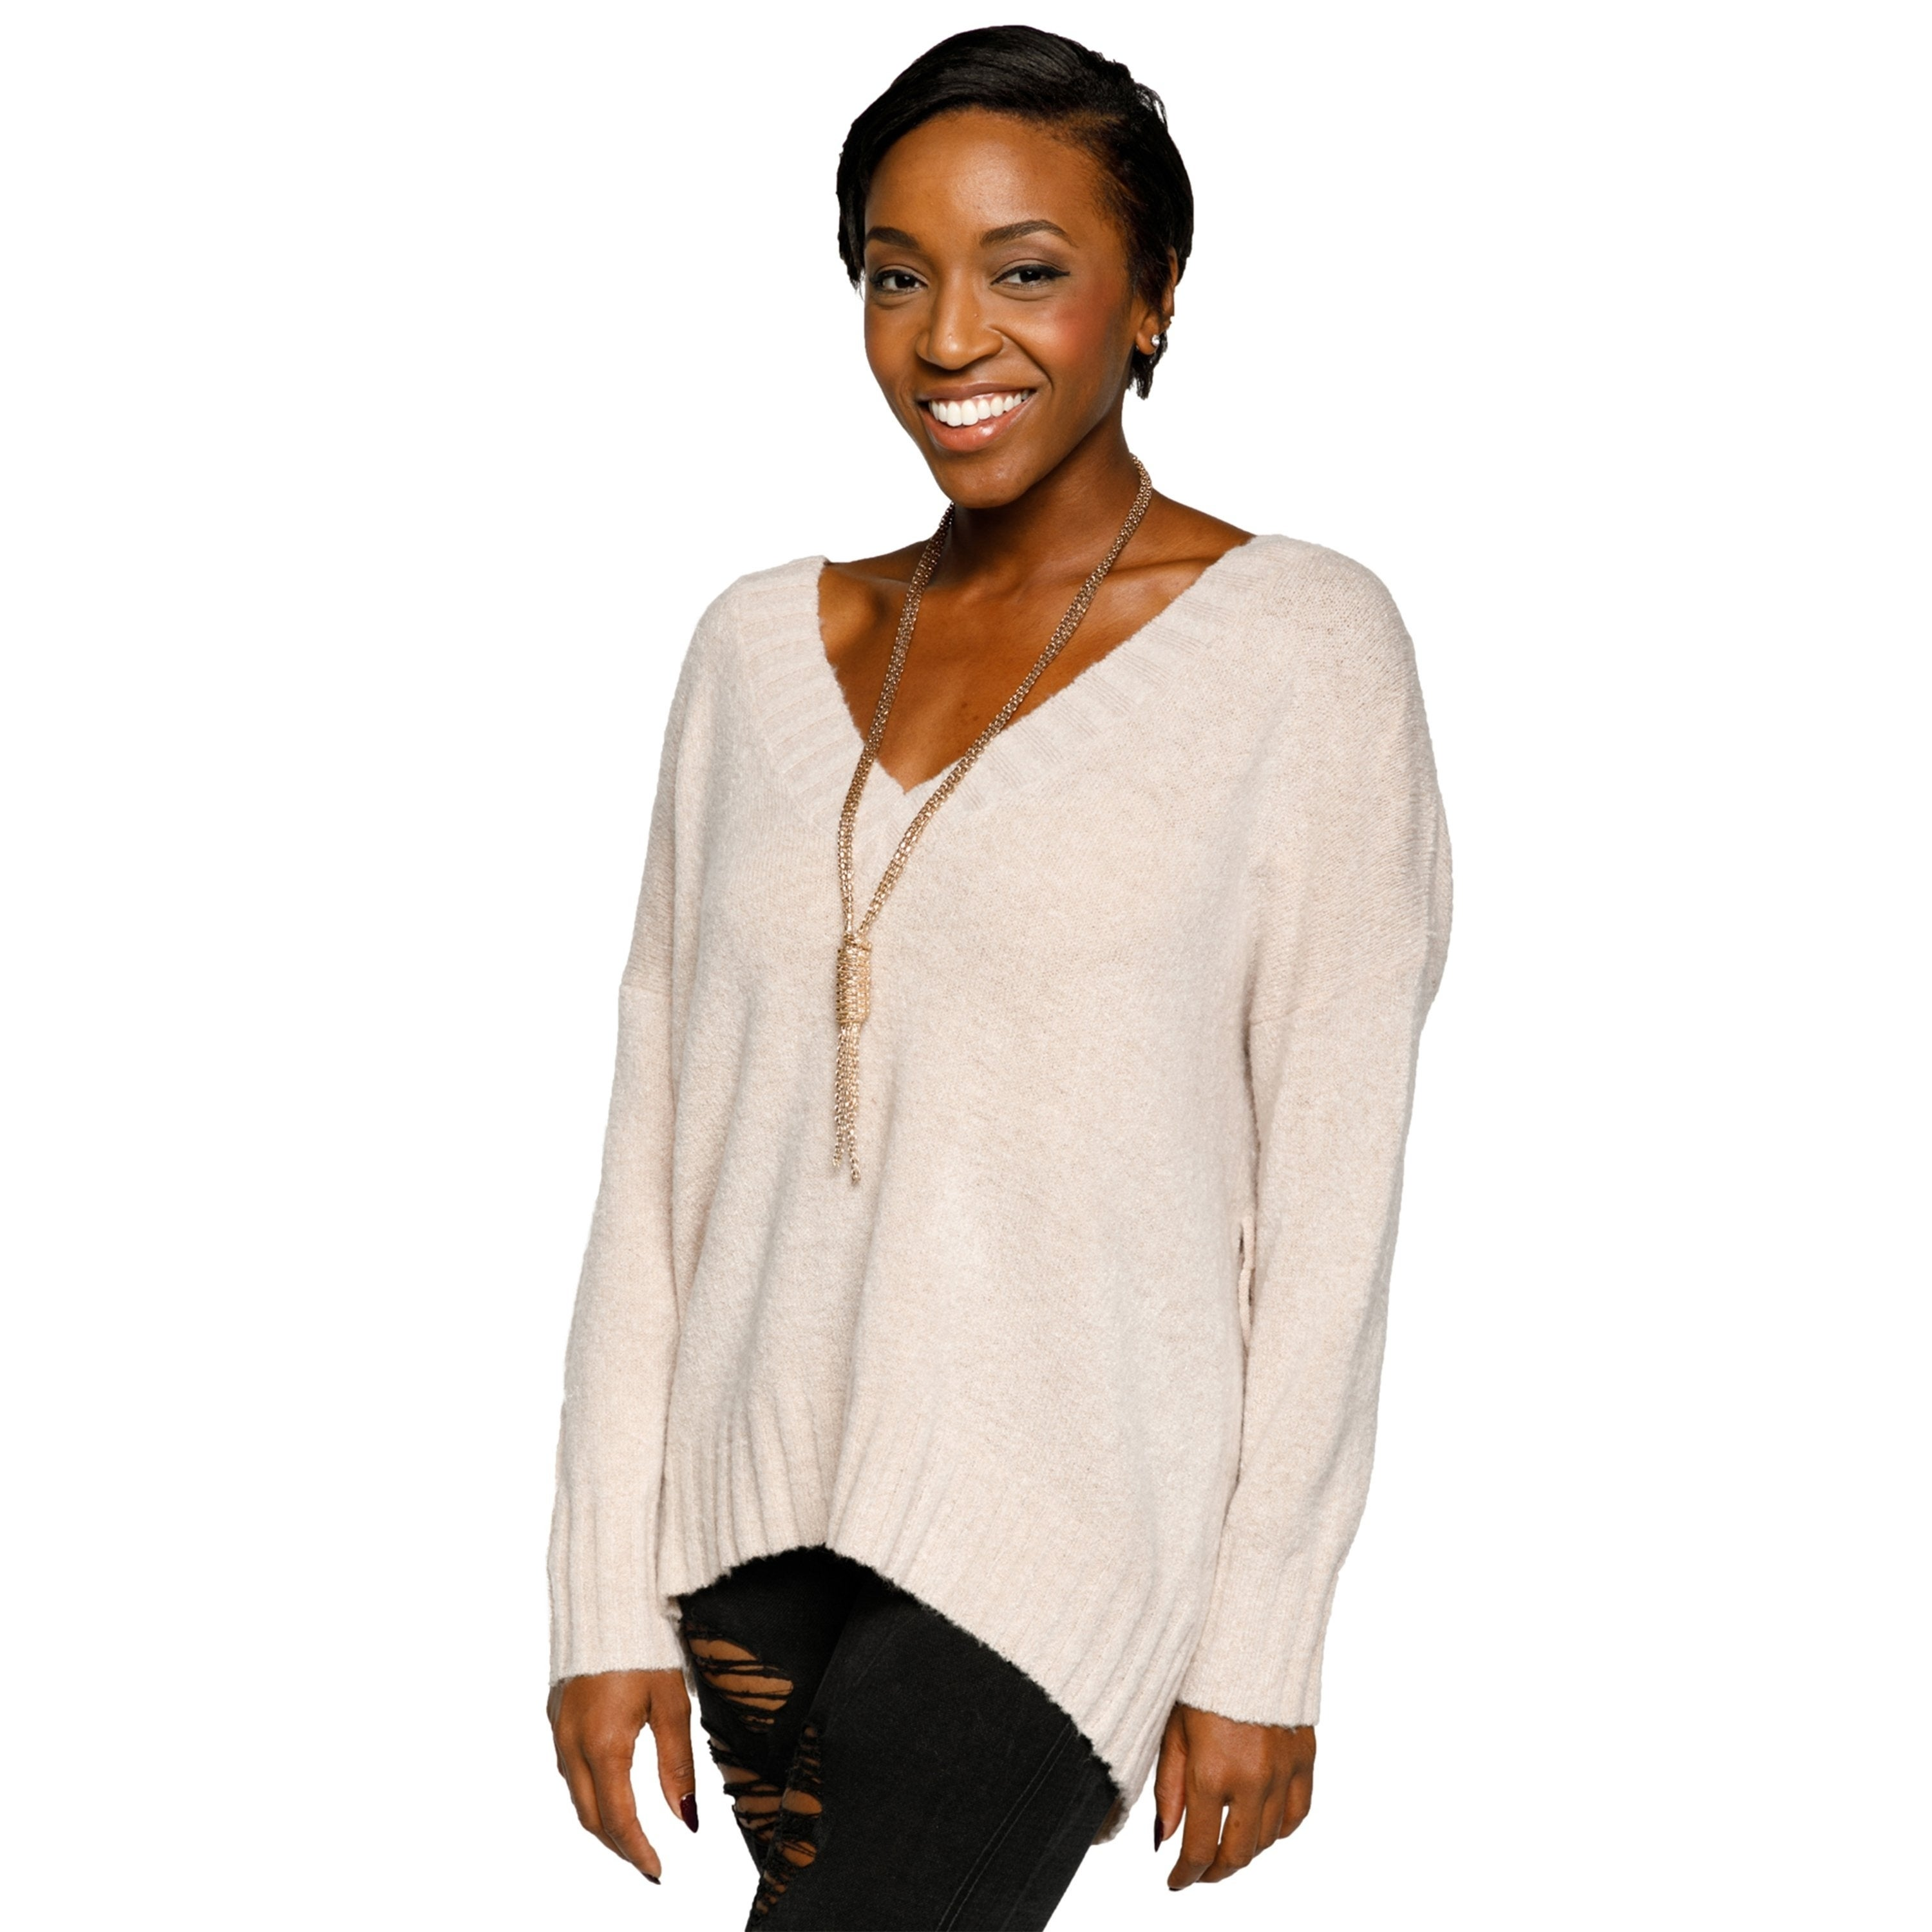 f924e0f052 Shop Xehar Womens Stylish V-Neck Pullover Lace Up Back Knit Sweater - Free  Shipping On Orders Over  45 - Overstock.com - 18060152